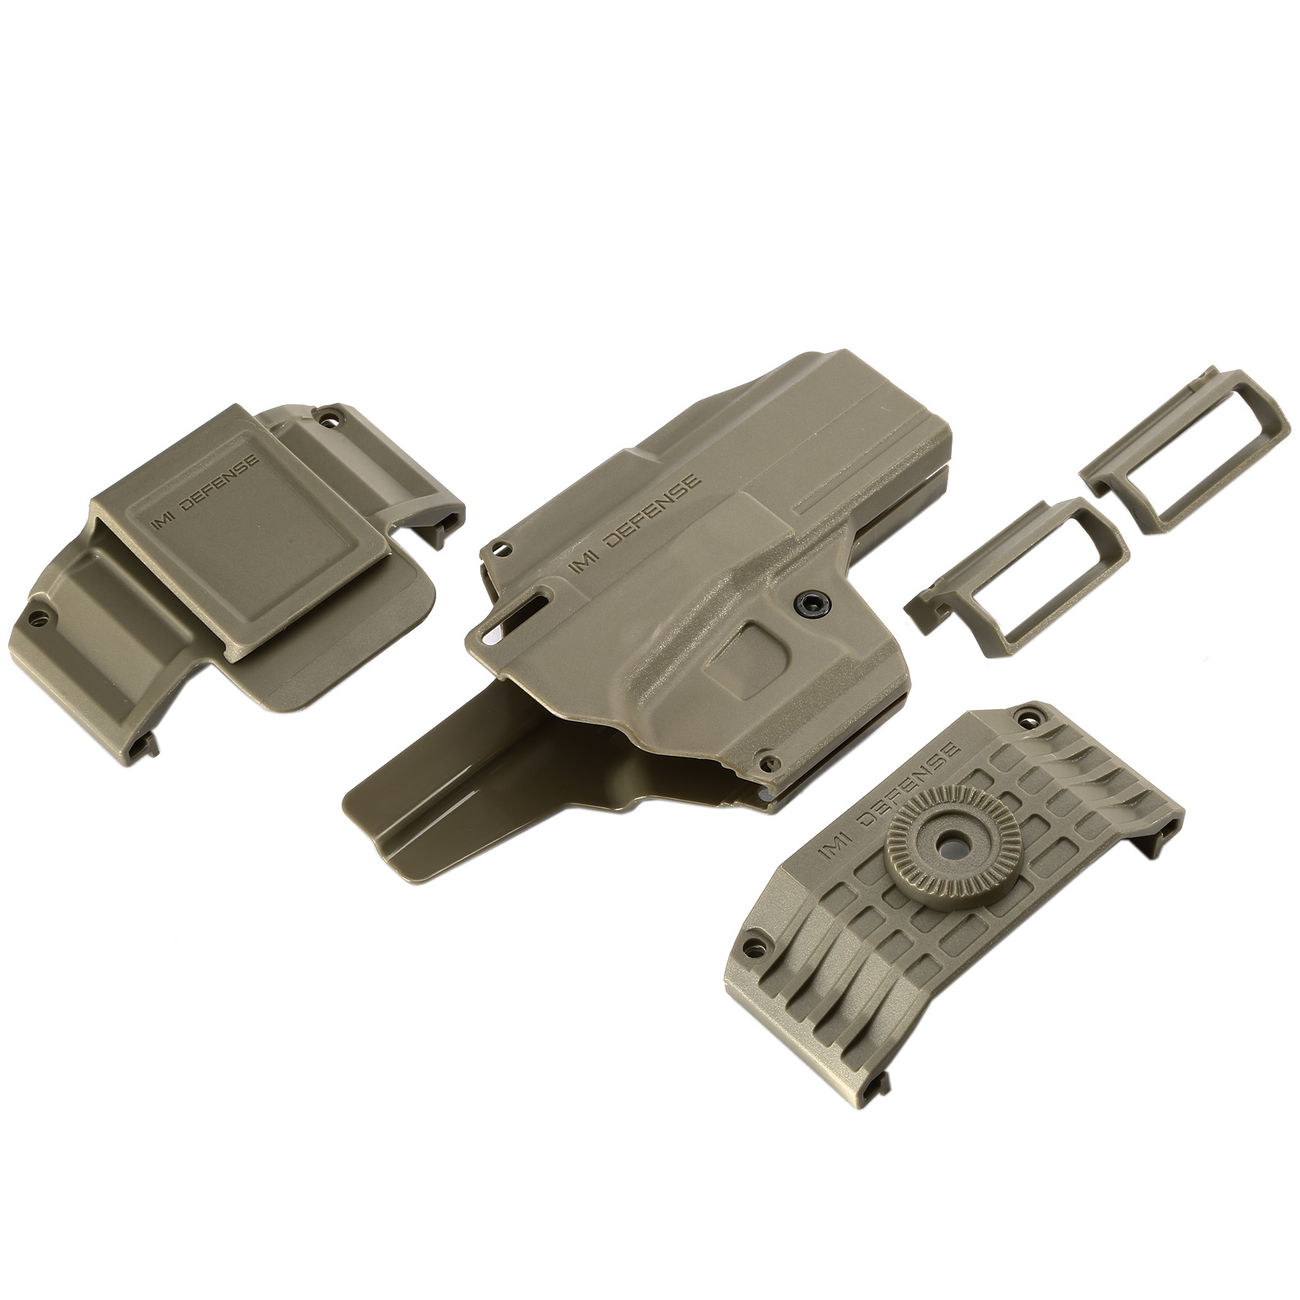 IMI Defense MORF X3 Polymer Holster IWB / OWB / Paddle für Glock 17 Rechts / Links Tan 6